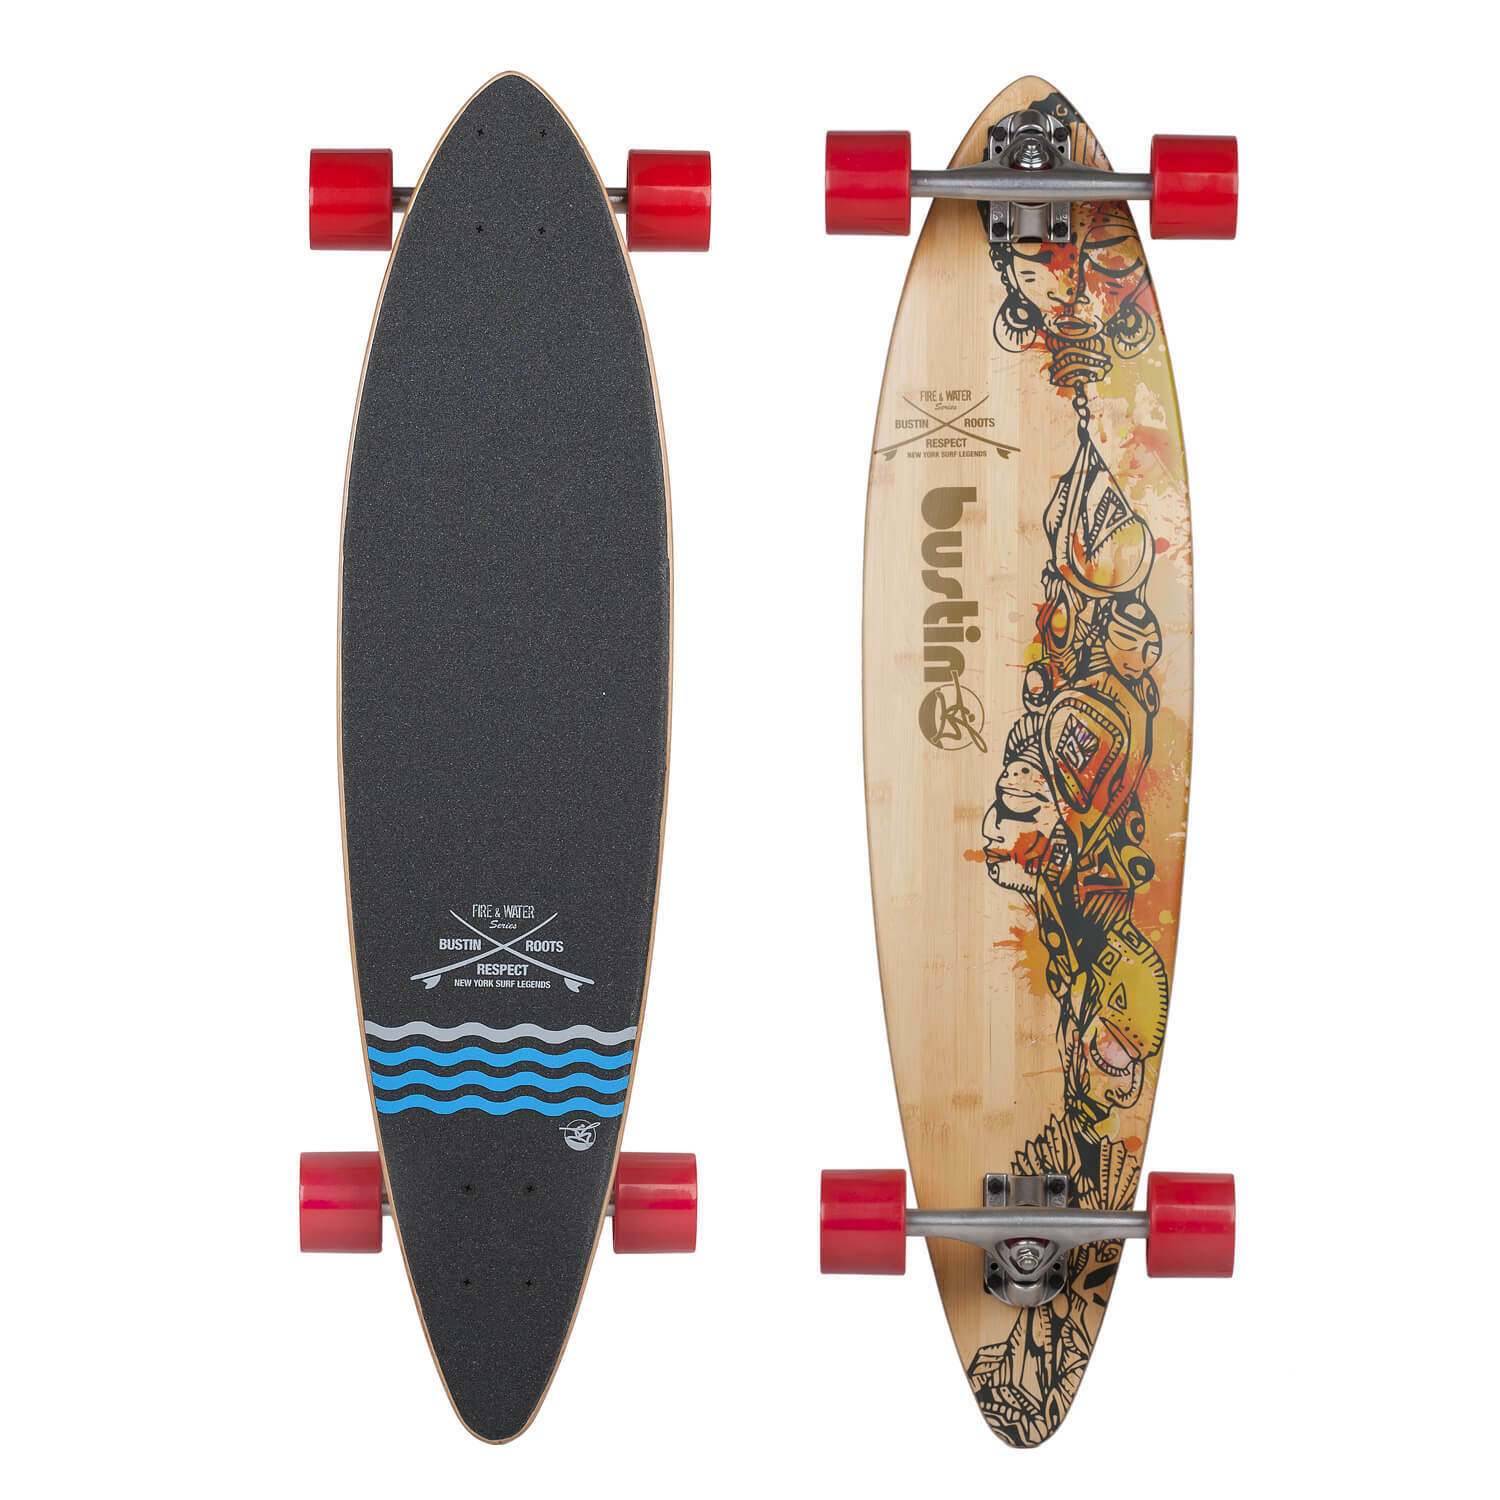 Bustin Pintail Longboard Ny Surf Tribute 36 x 8.65 Beginners Board Paris Axles